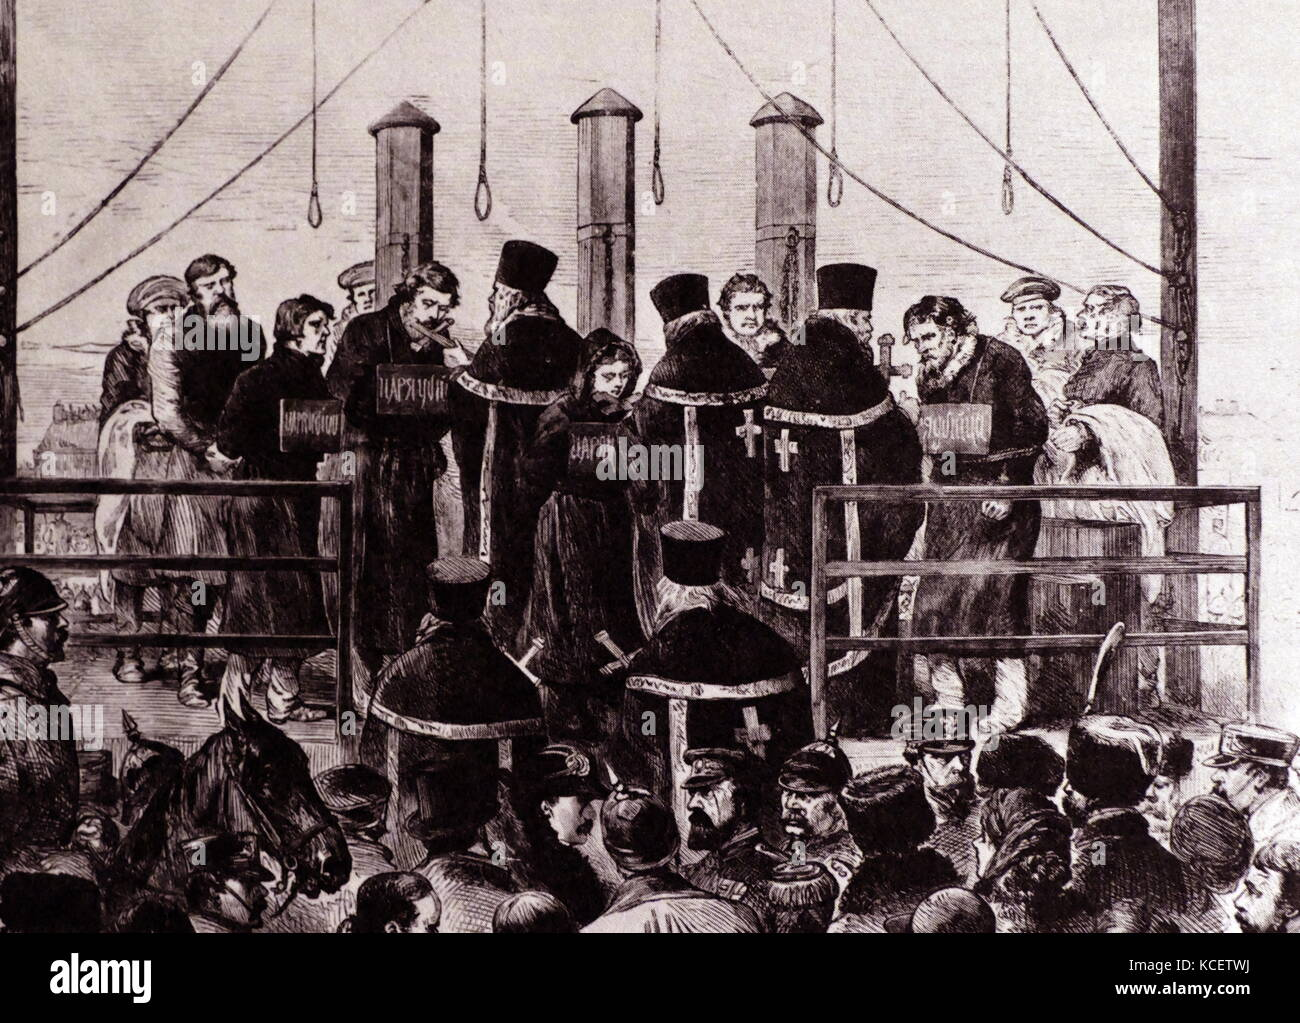 Execution of the assassins of Tsar Alexander II (1818 - 1881), Emperor of  Russia from 2 March 1855 until his assassination in 1881.